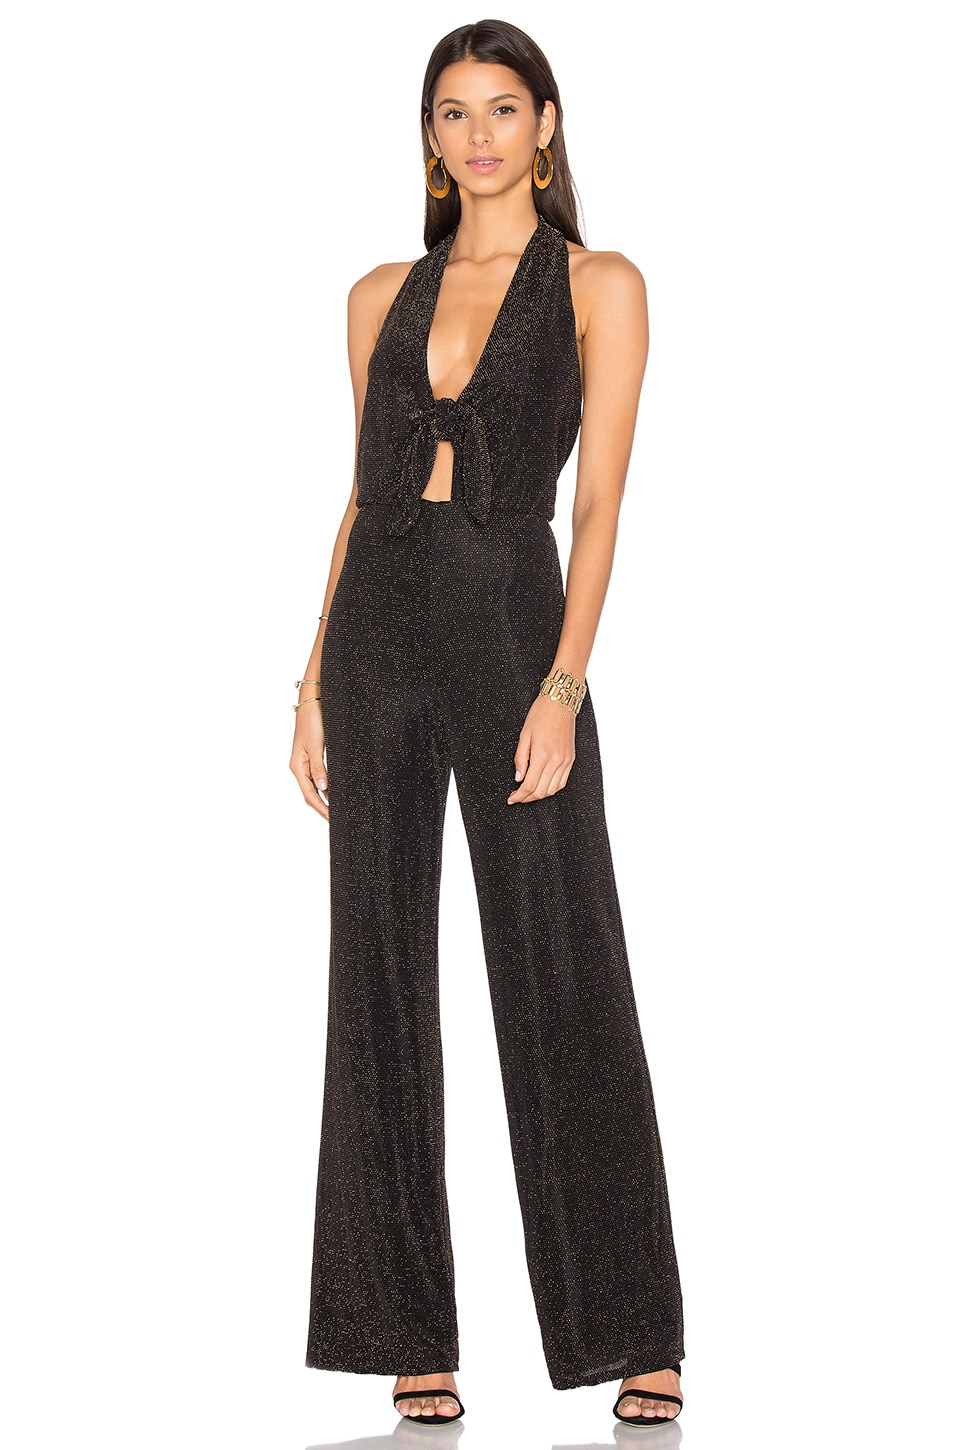 x REVOLVE Coco Jumpsuit Black & Gold by House of Harlow 1960